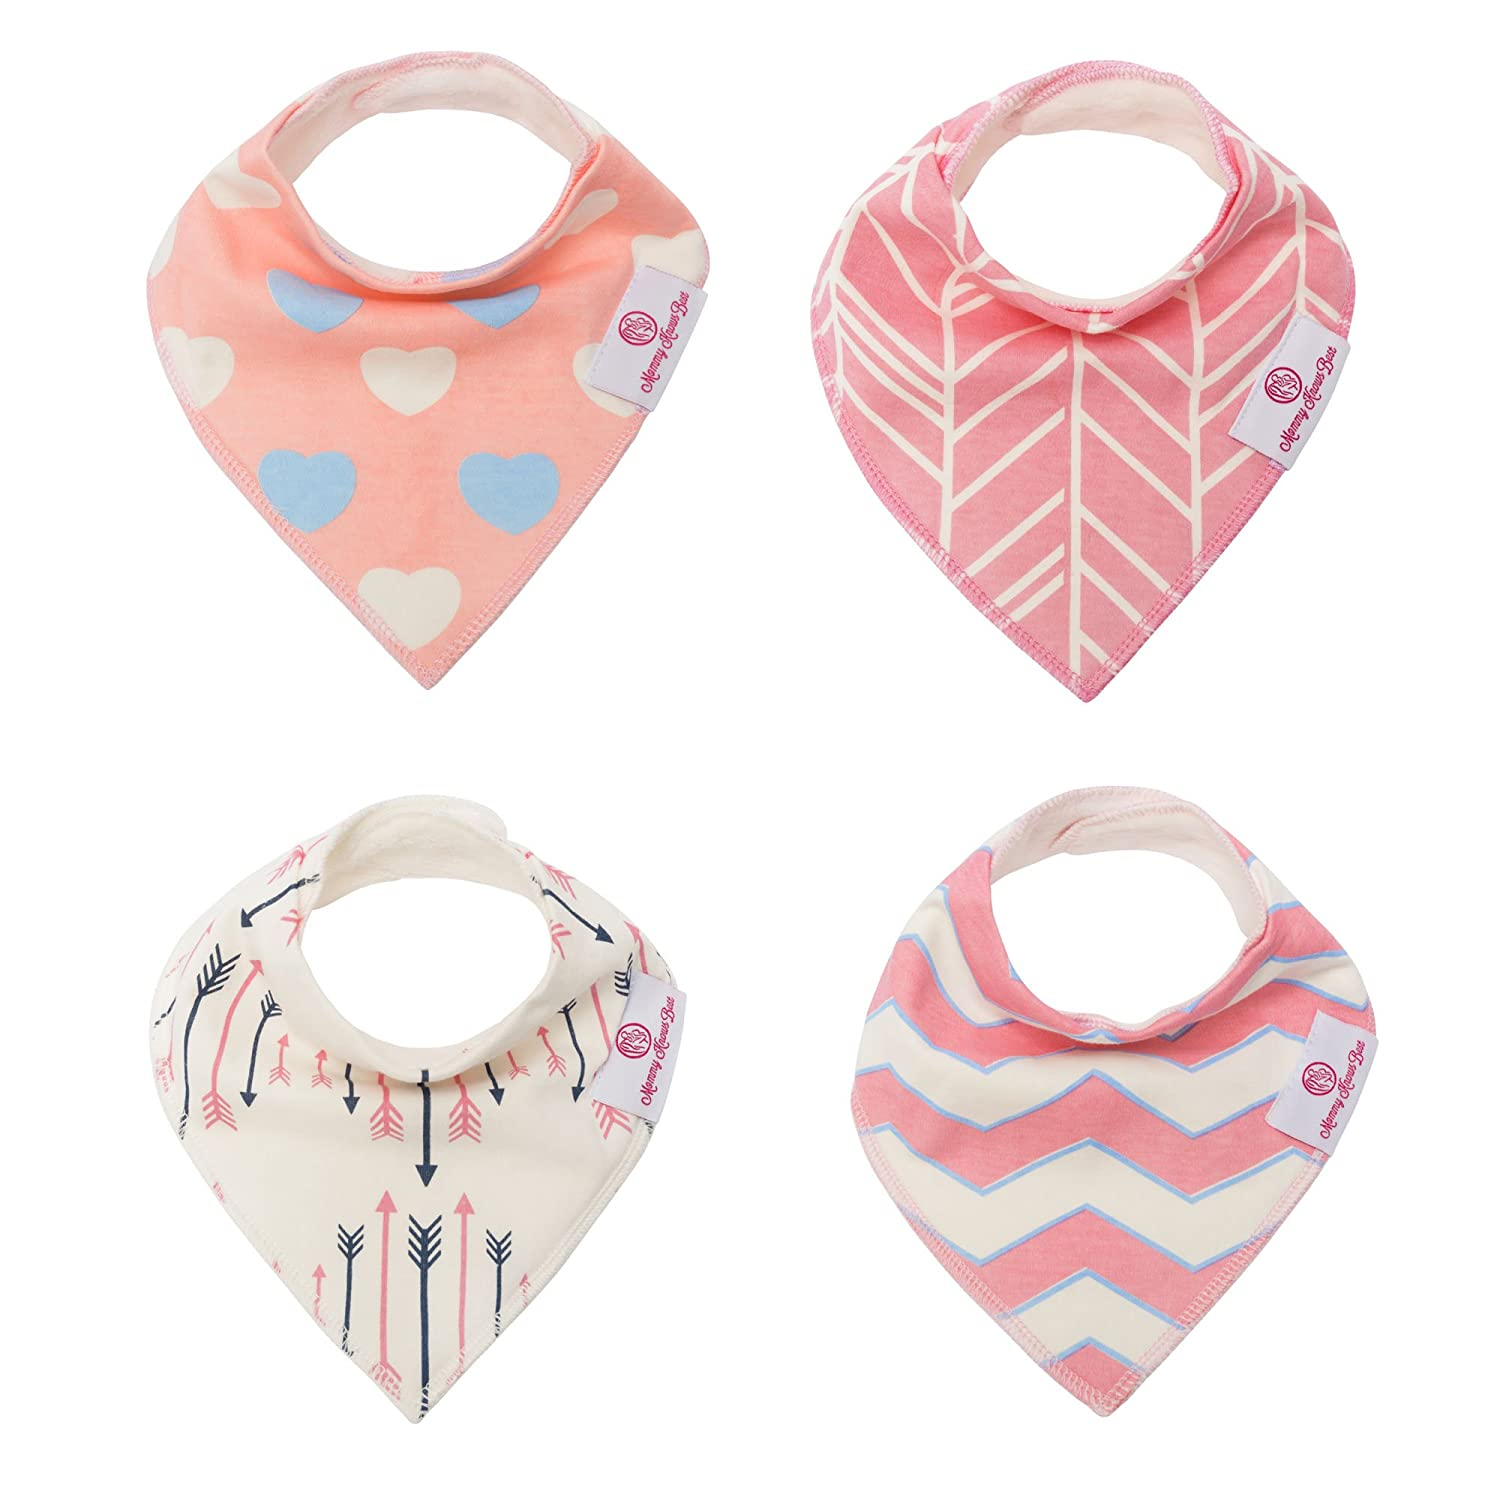 Baby Bandana Drool Bibs Set: 4 Pack Mommy Knows Best